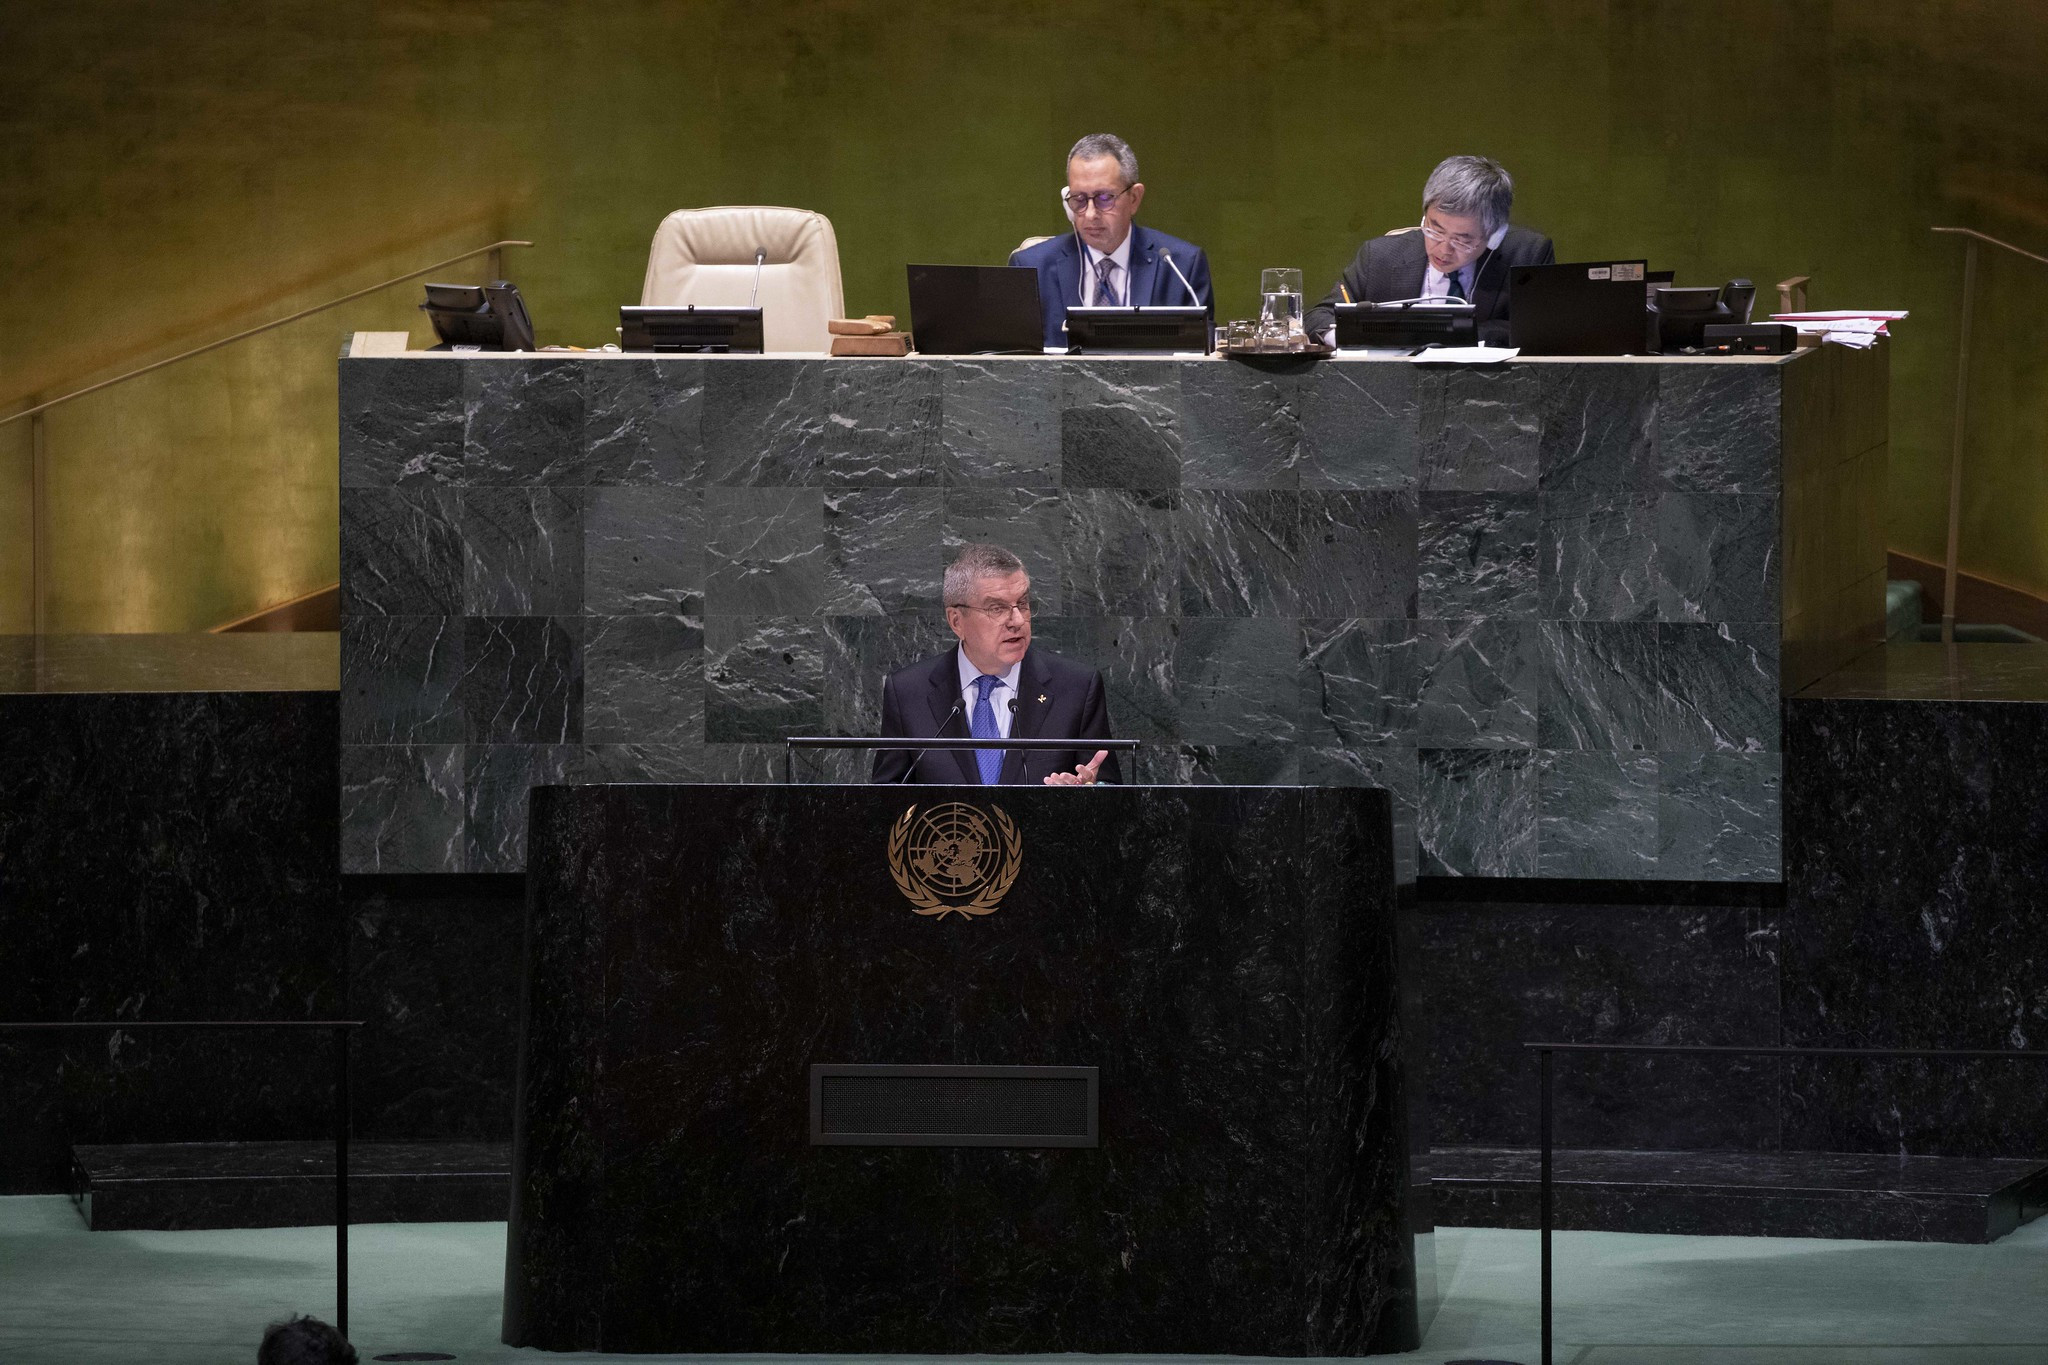 IOC President Thomas Bach attended the UN General Assembly in New York ©IOC